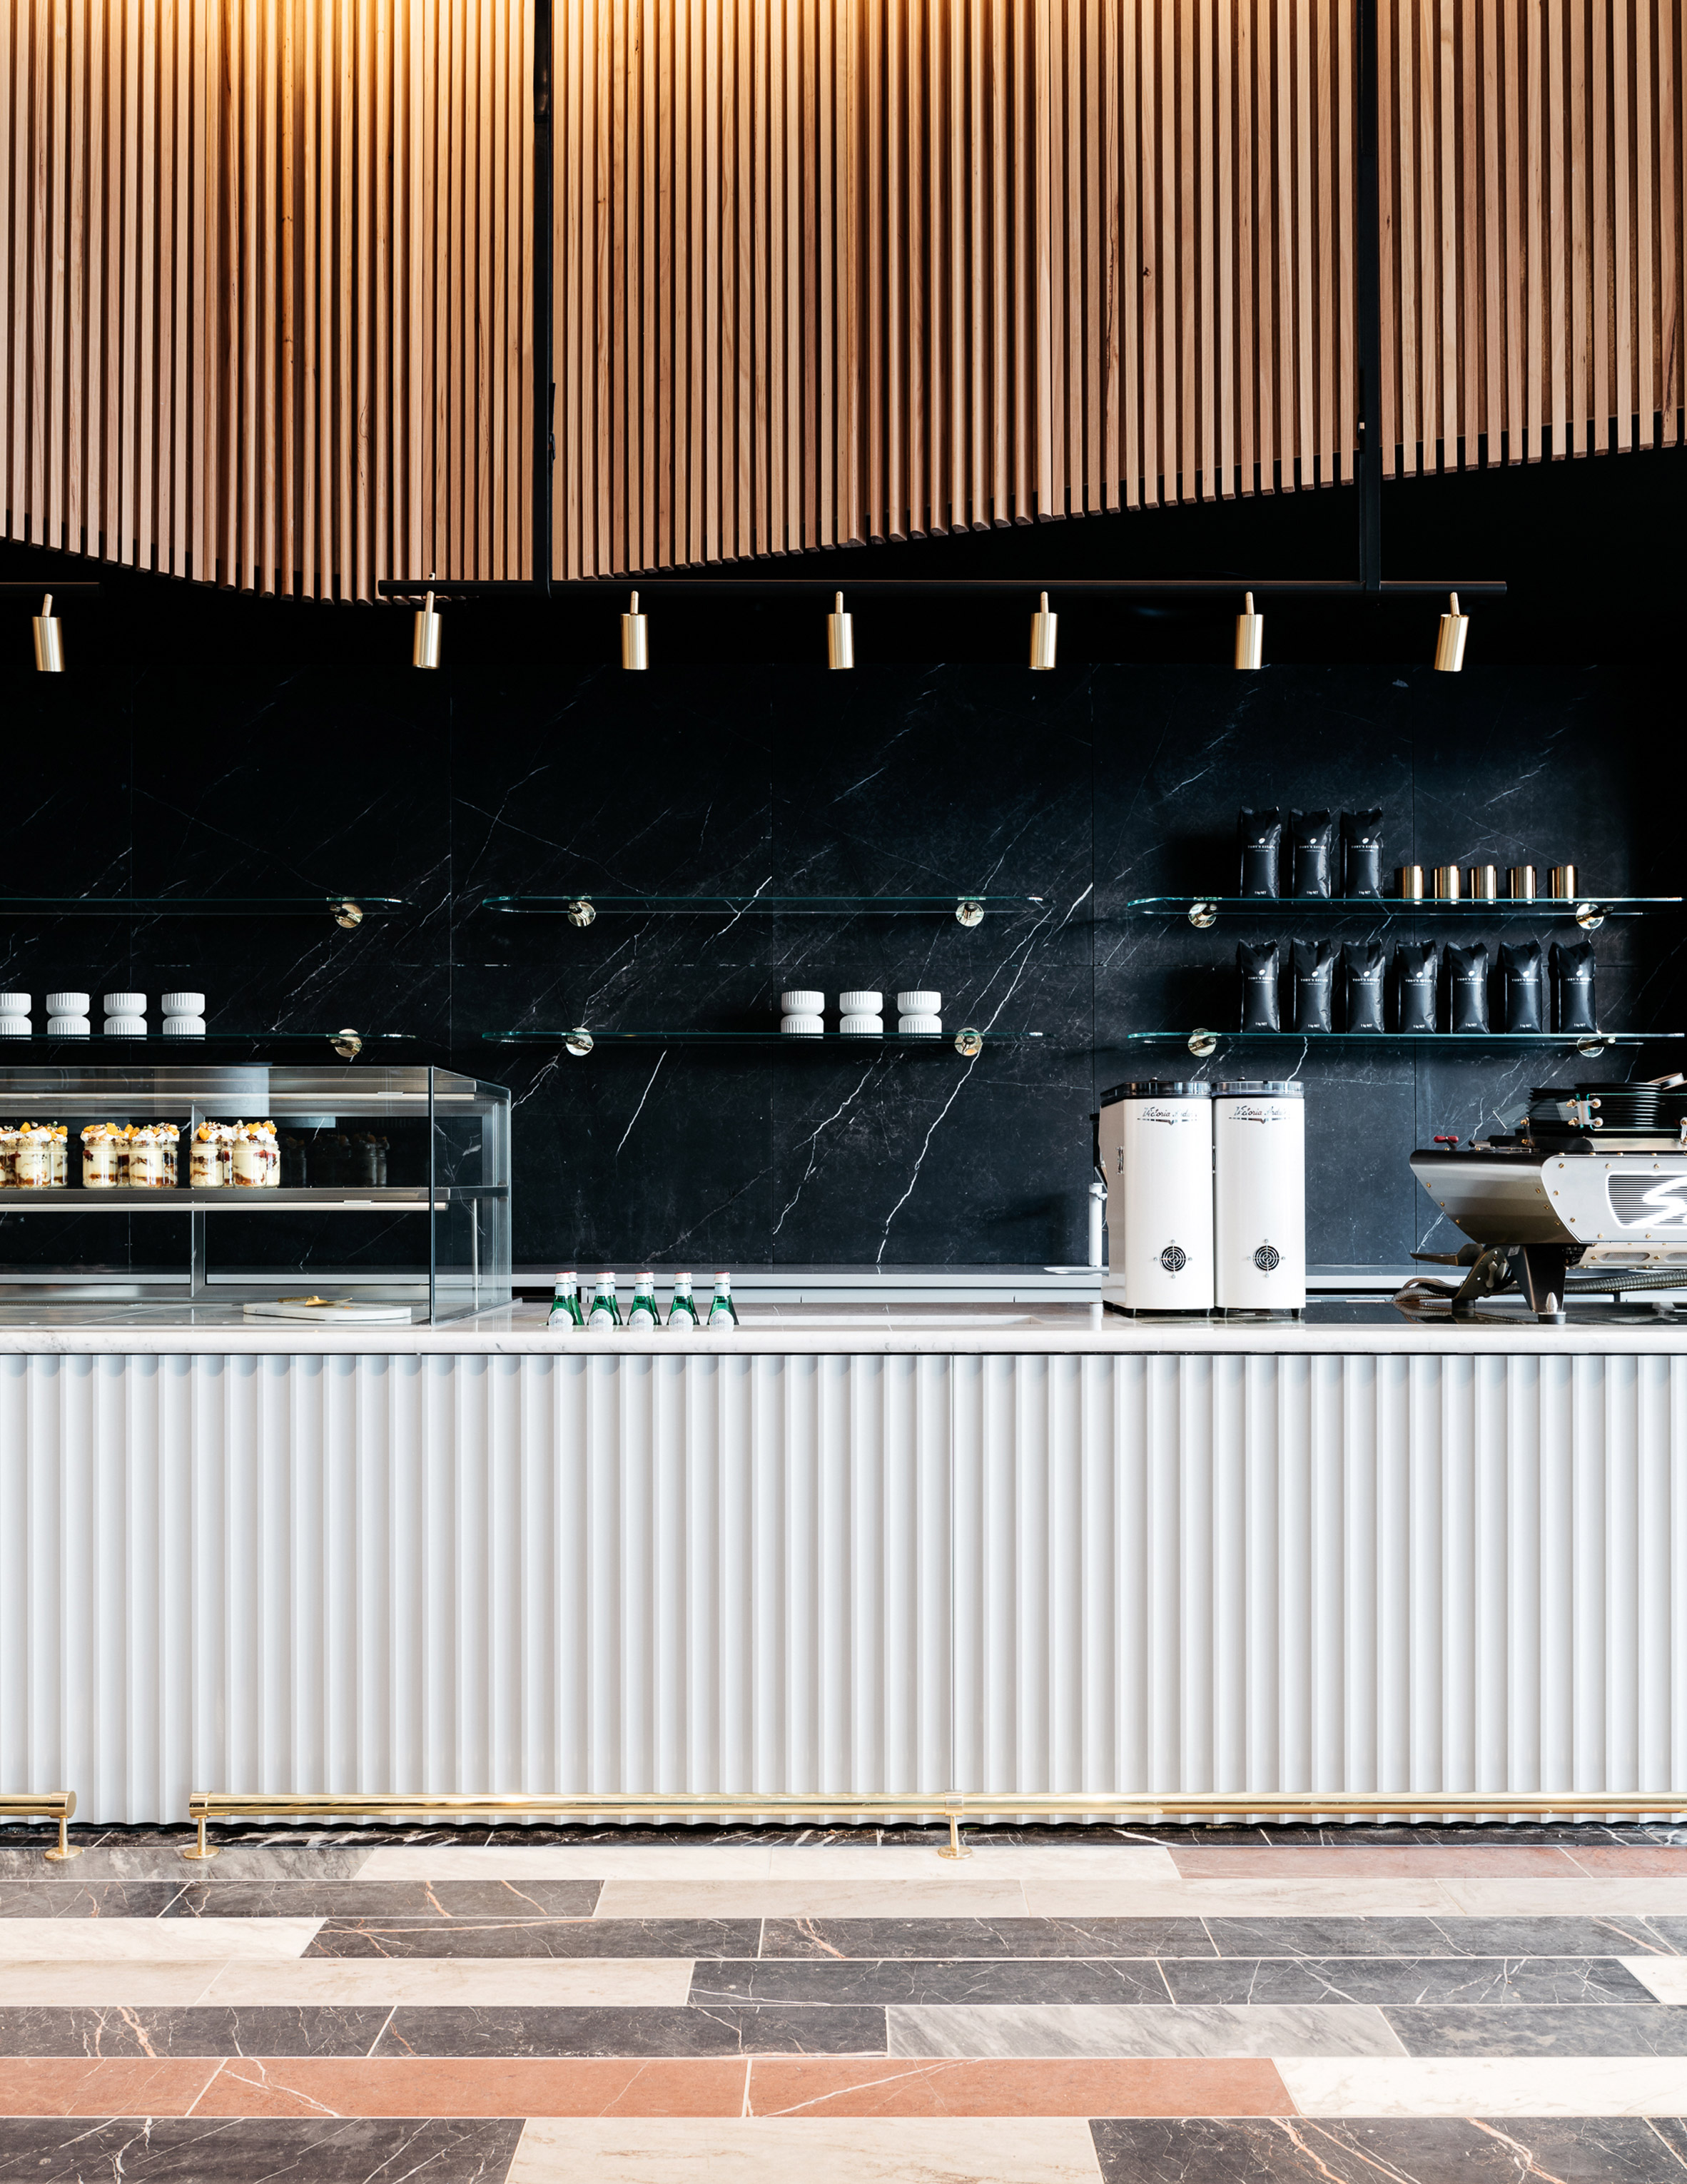 Studio Tate references old treasuries with coffee shop for Commonwealth Bank of Australia